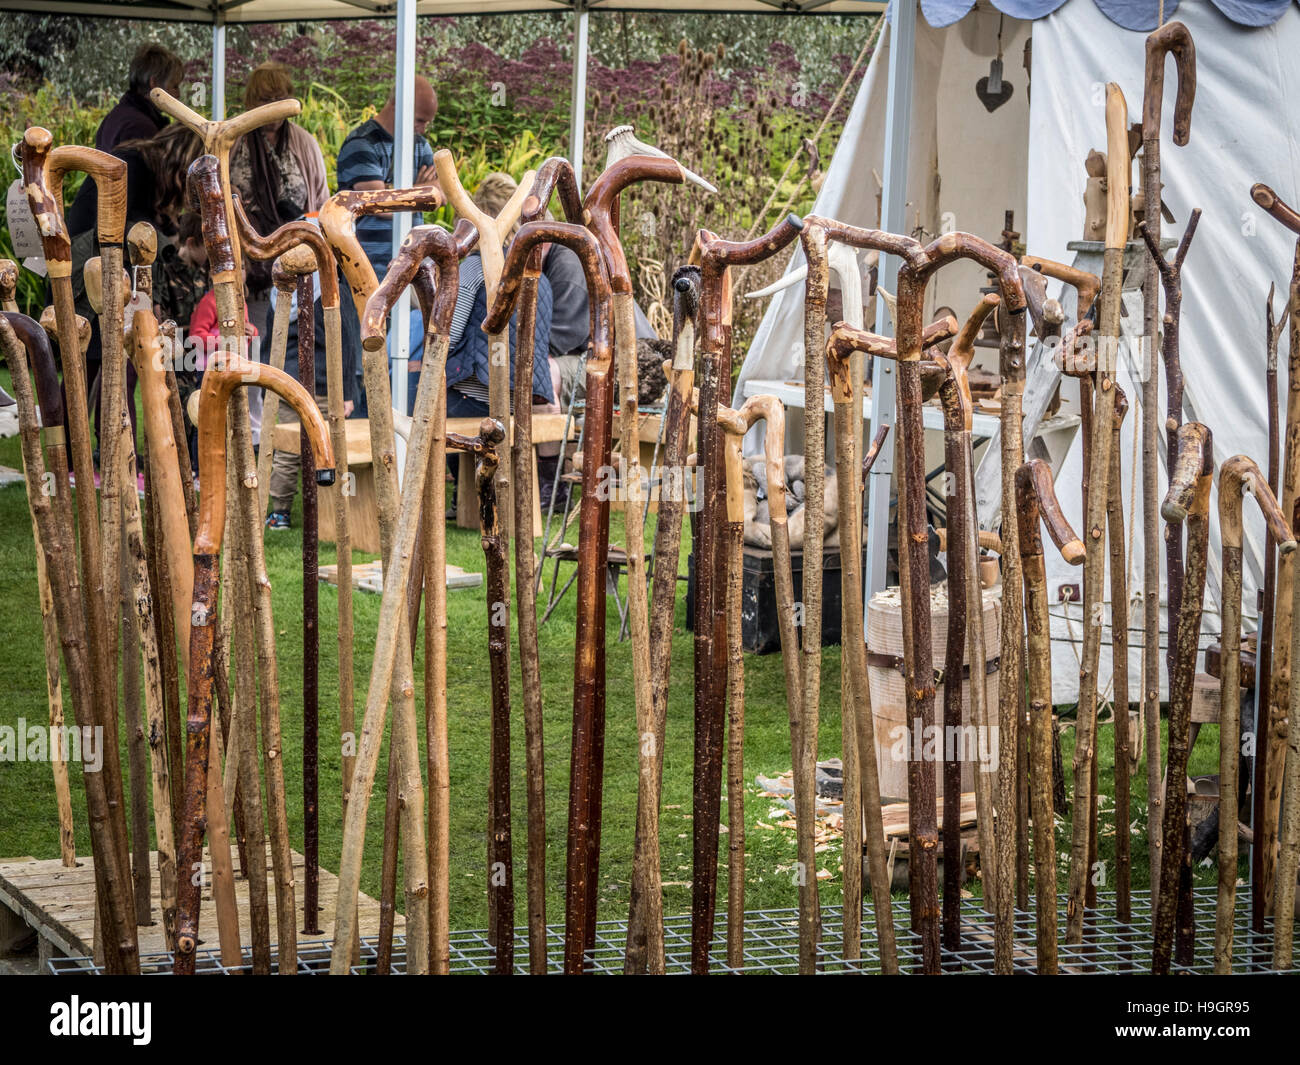 Hand crafted walking sticks for sale at country show - Stock Image